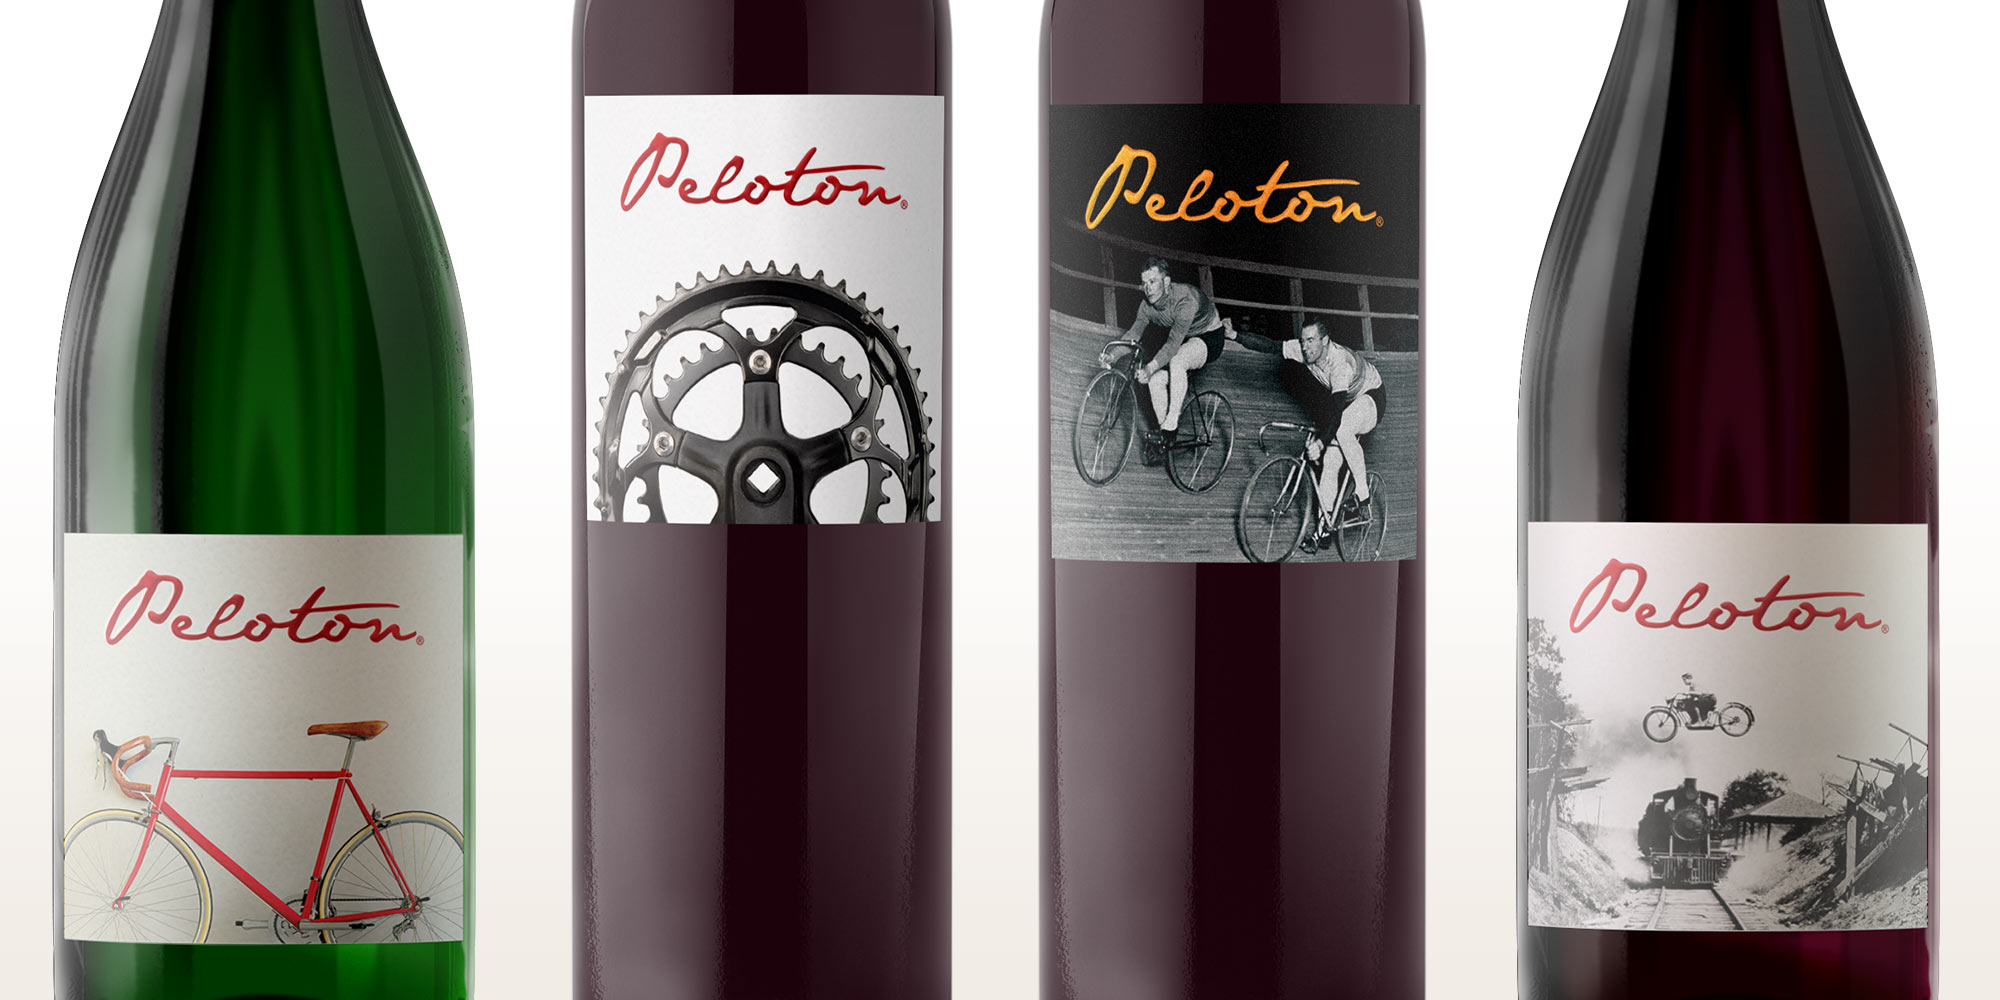 Peloton Cellars wine bottle detail